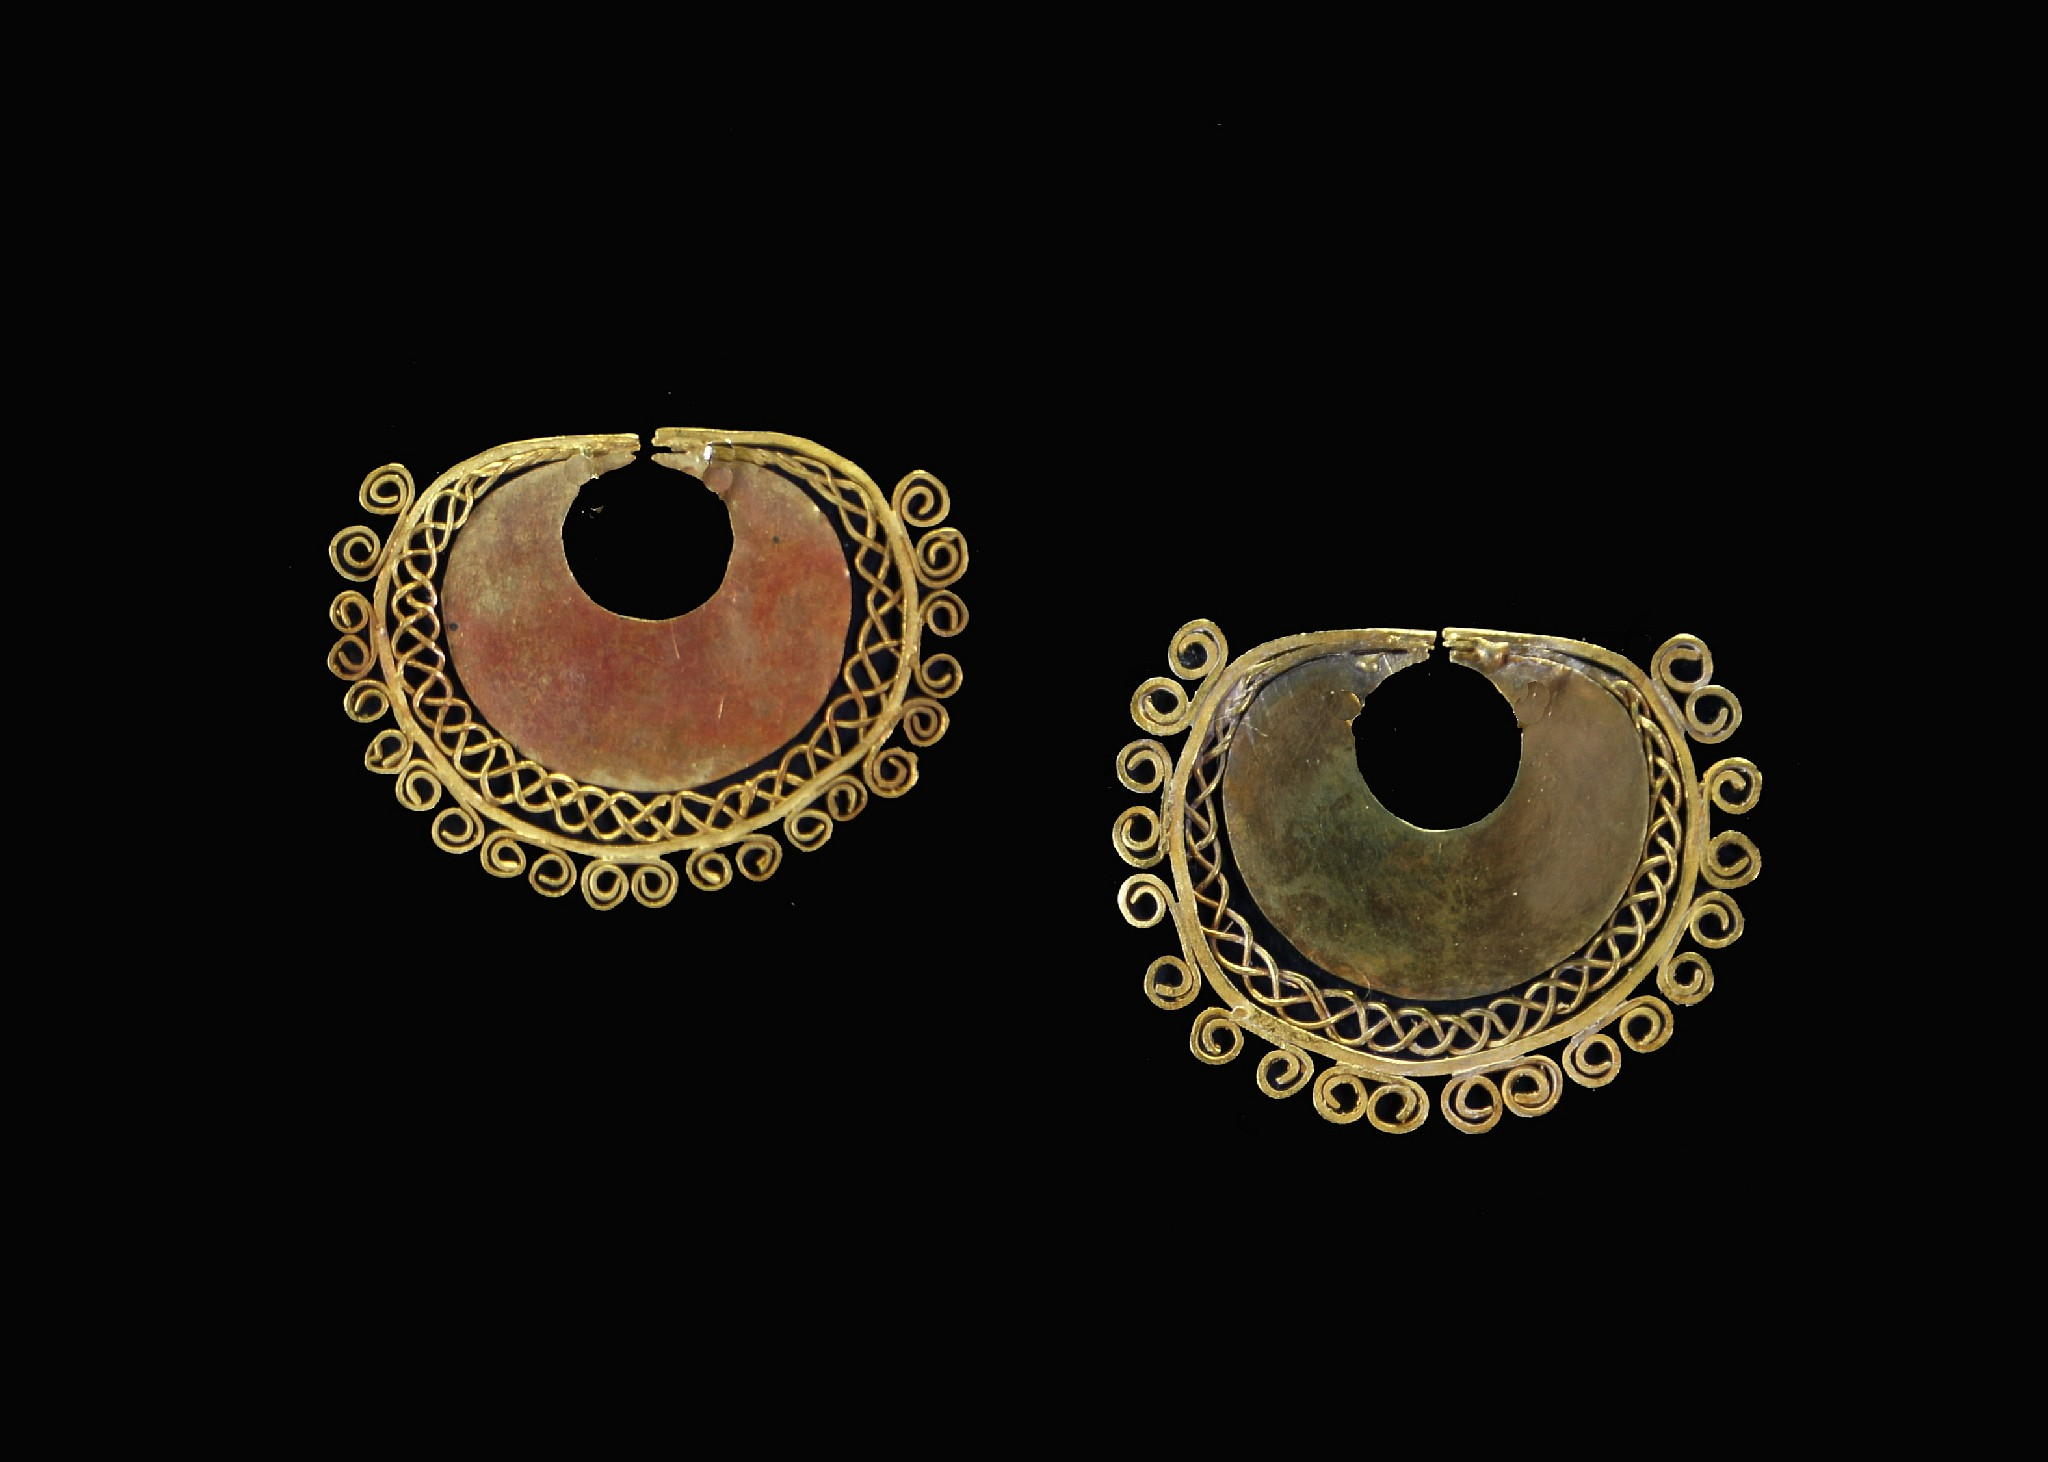 Peru, Early Nasca Gold Pair of Earrings with Filigree Decoration Metal